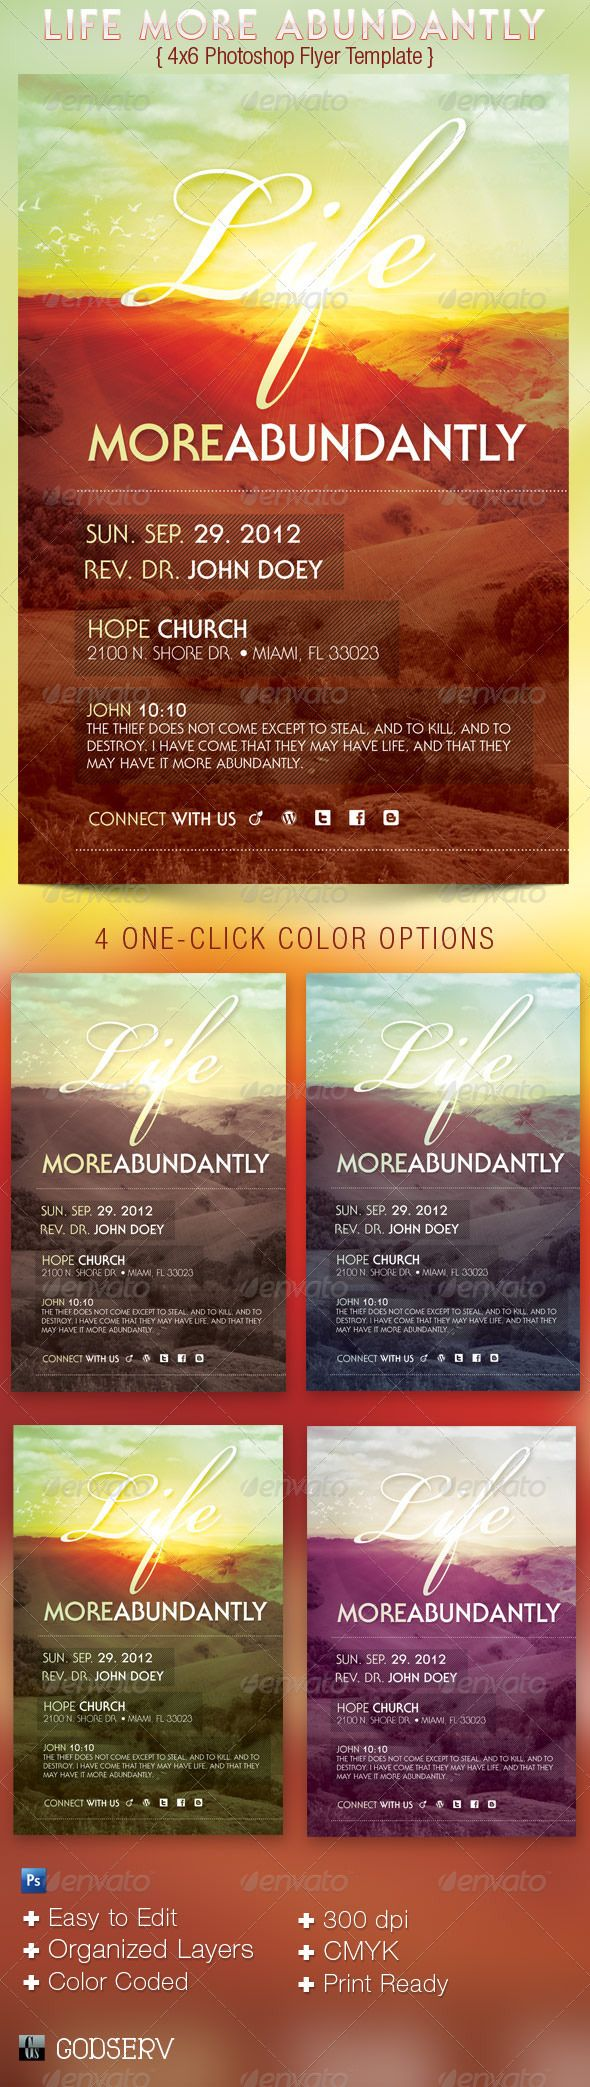 best images about church print samples program life more abundantly church flyer template